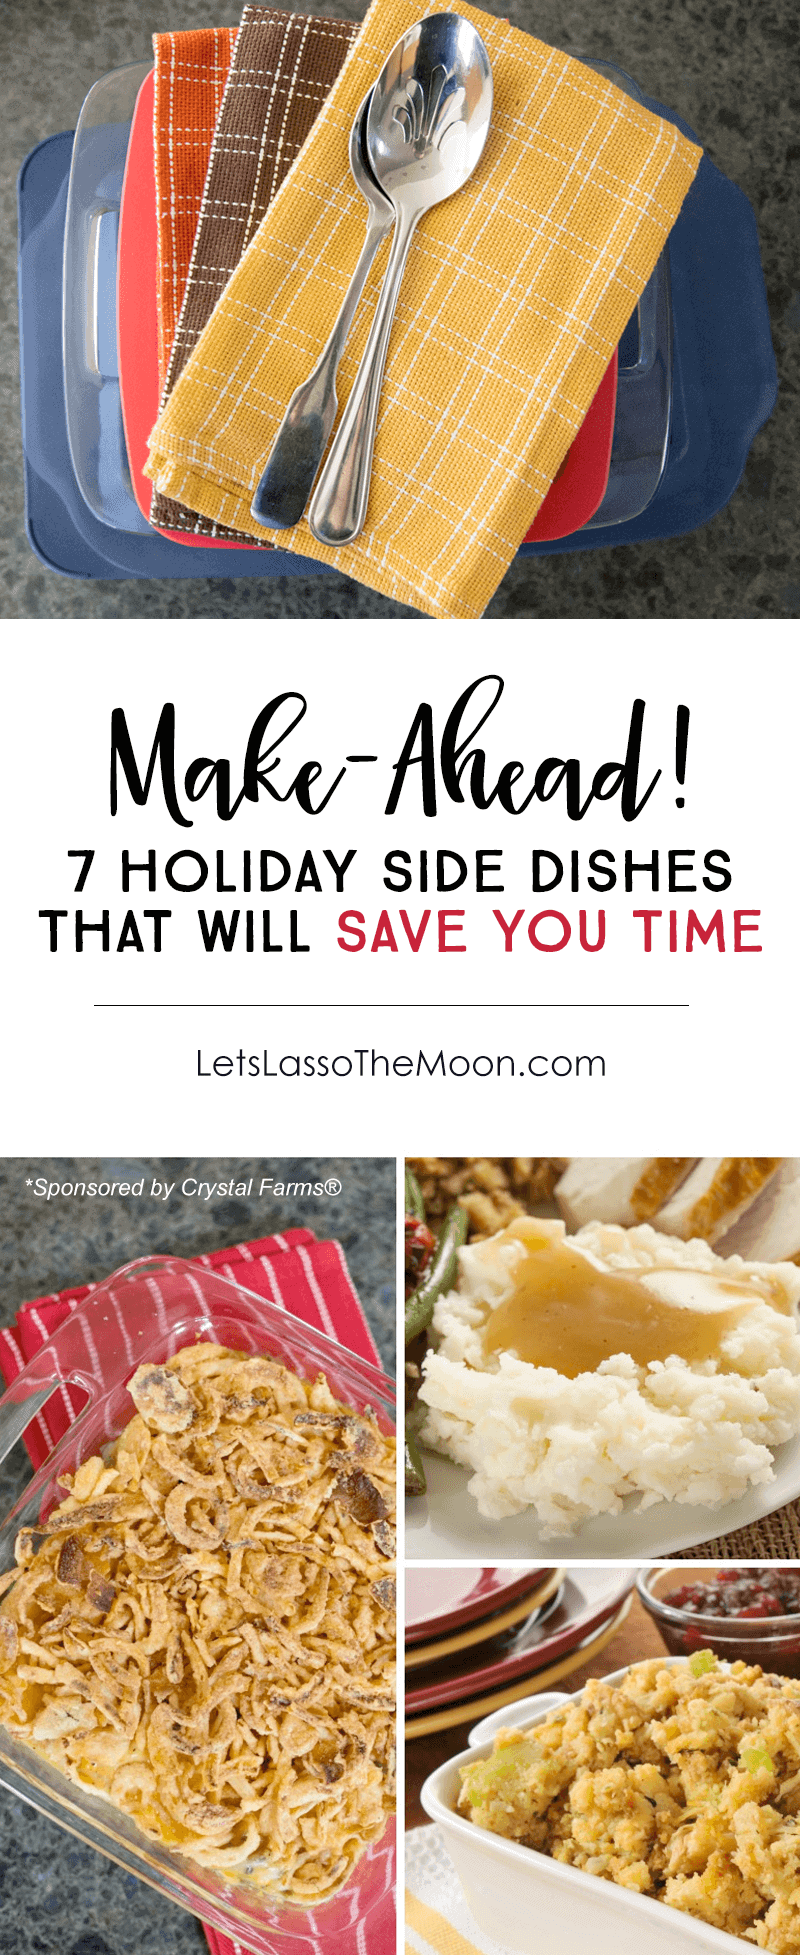 7 Make-Ahead Holiday Side Dishes to Save You Time in the Kitchen *Great list for holiday meal planning. Cheesy Green Bean Casserole is my fav!